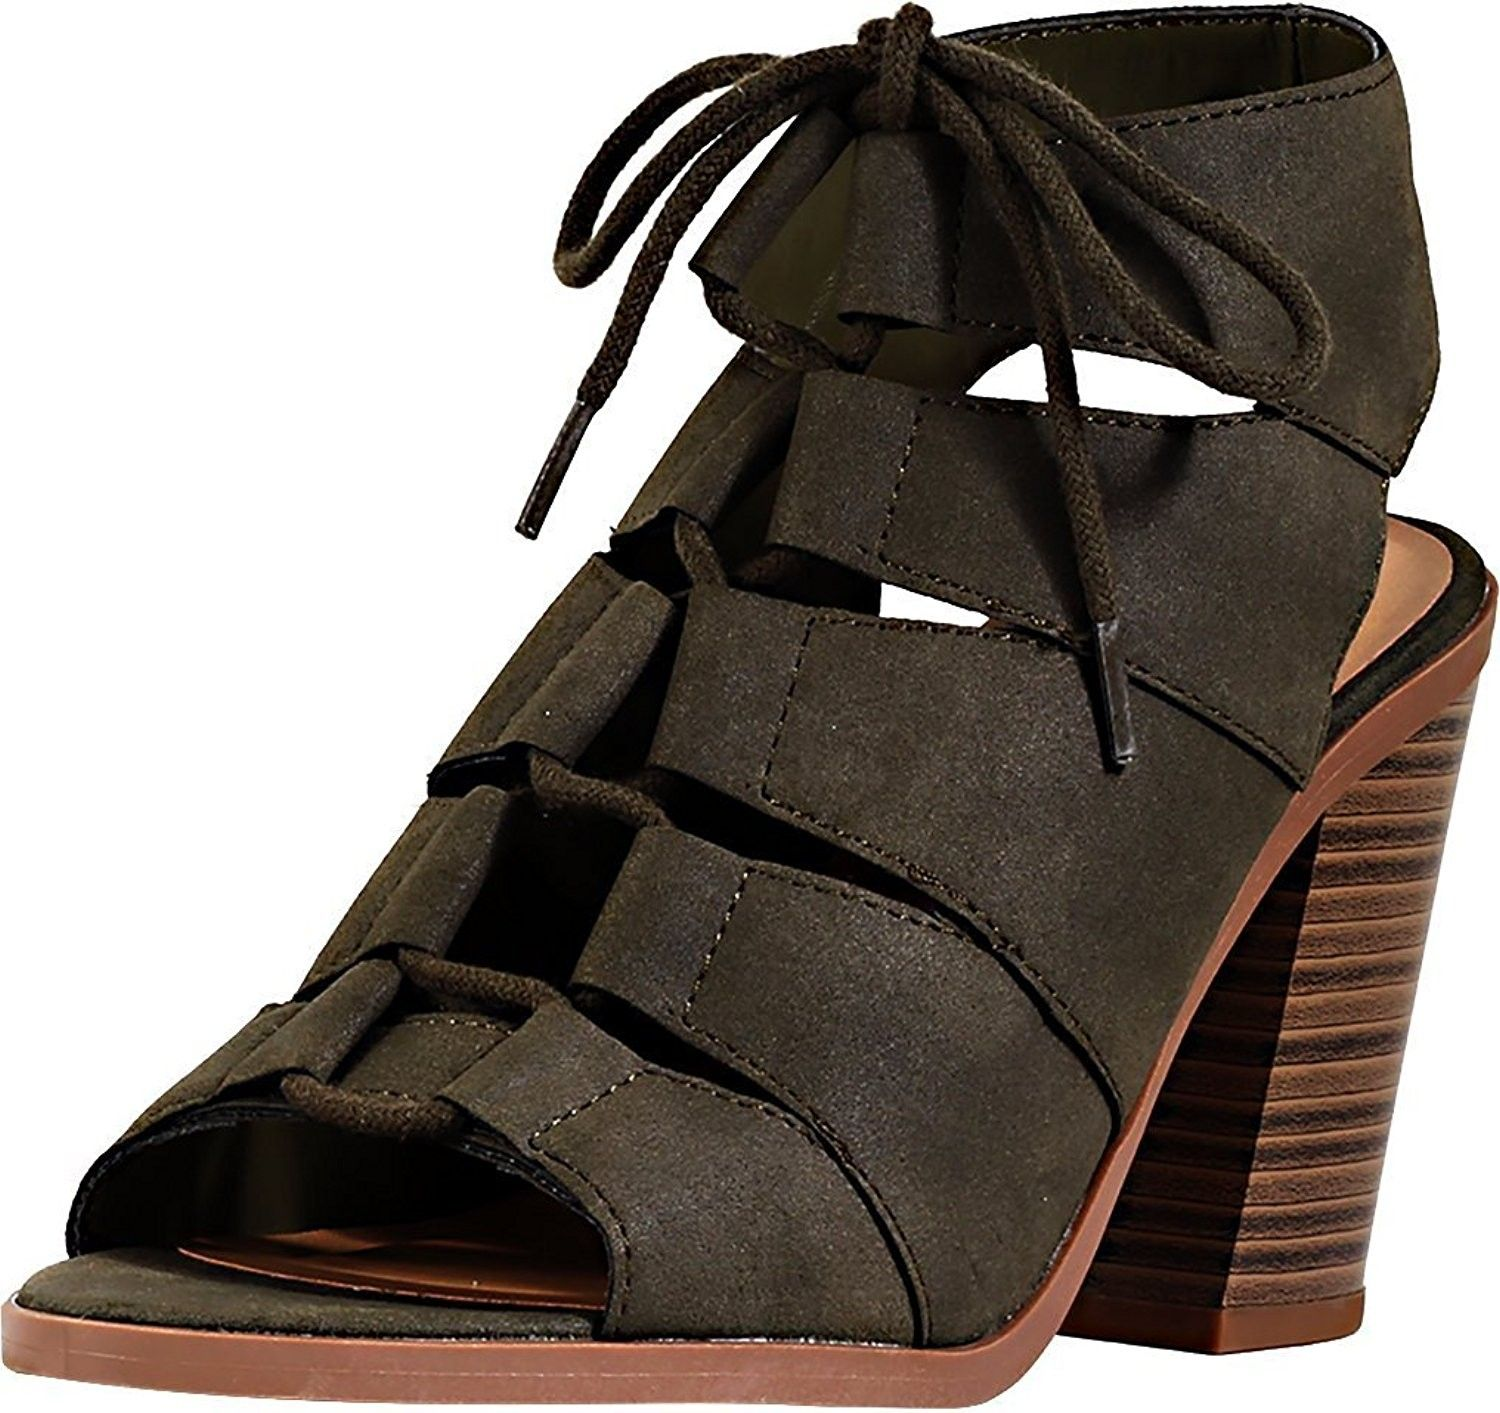 fe1824c60a4d Women s Quince Faux Leather Peep Toe Lace Up Gladiator Slingback ...